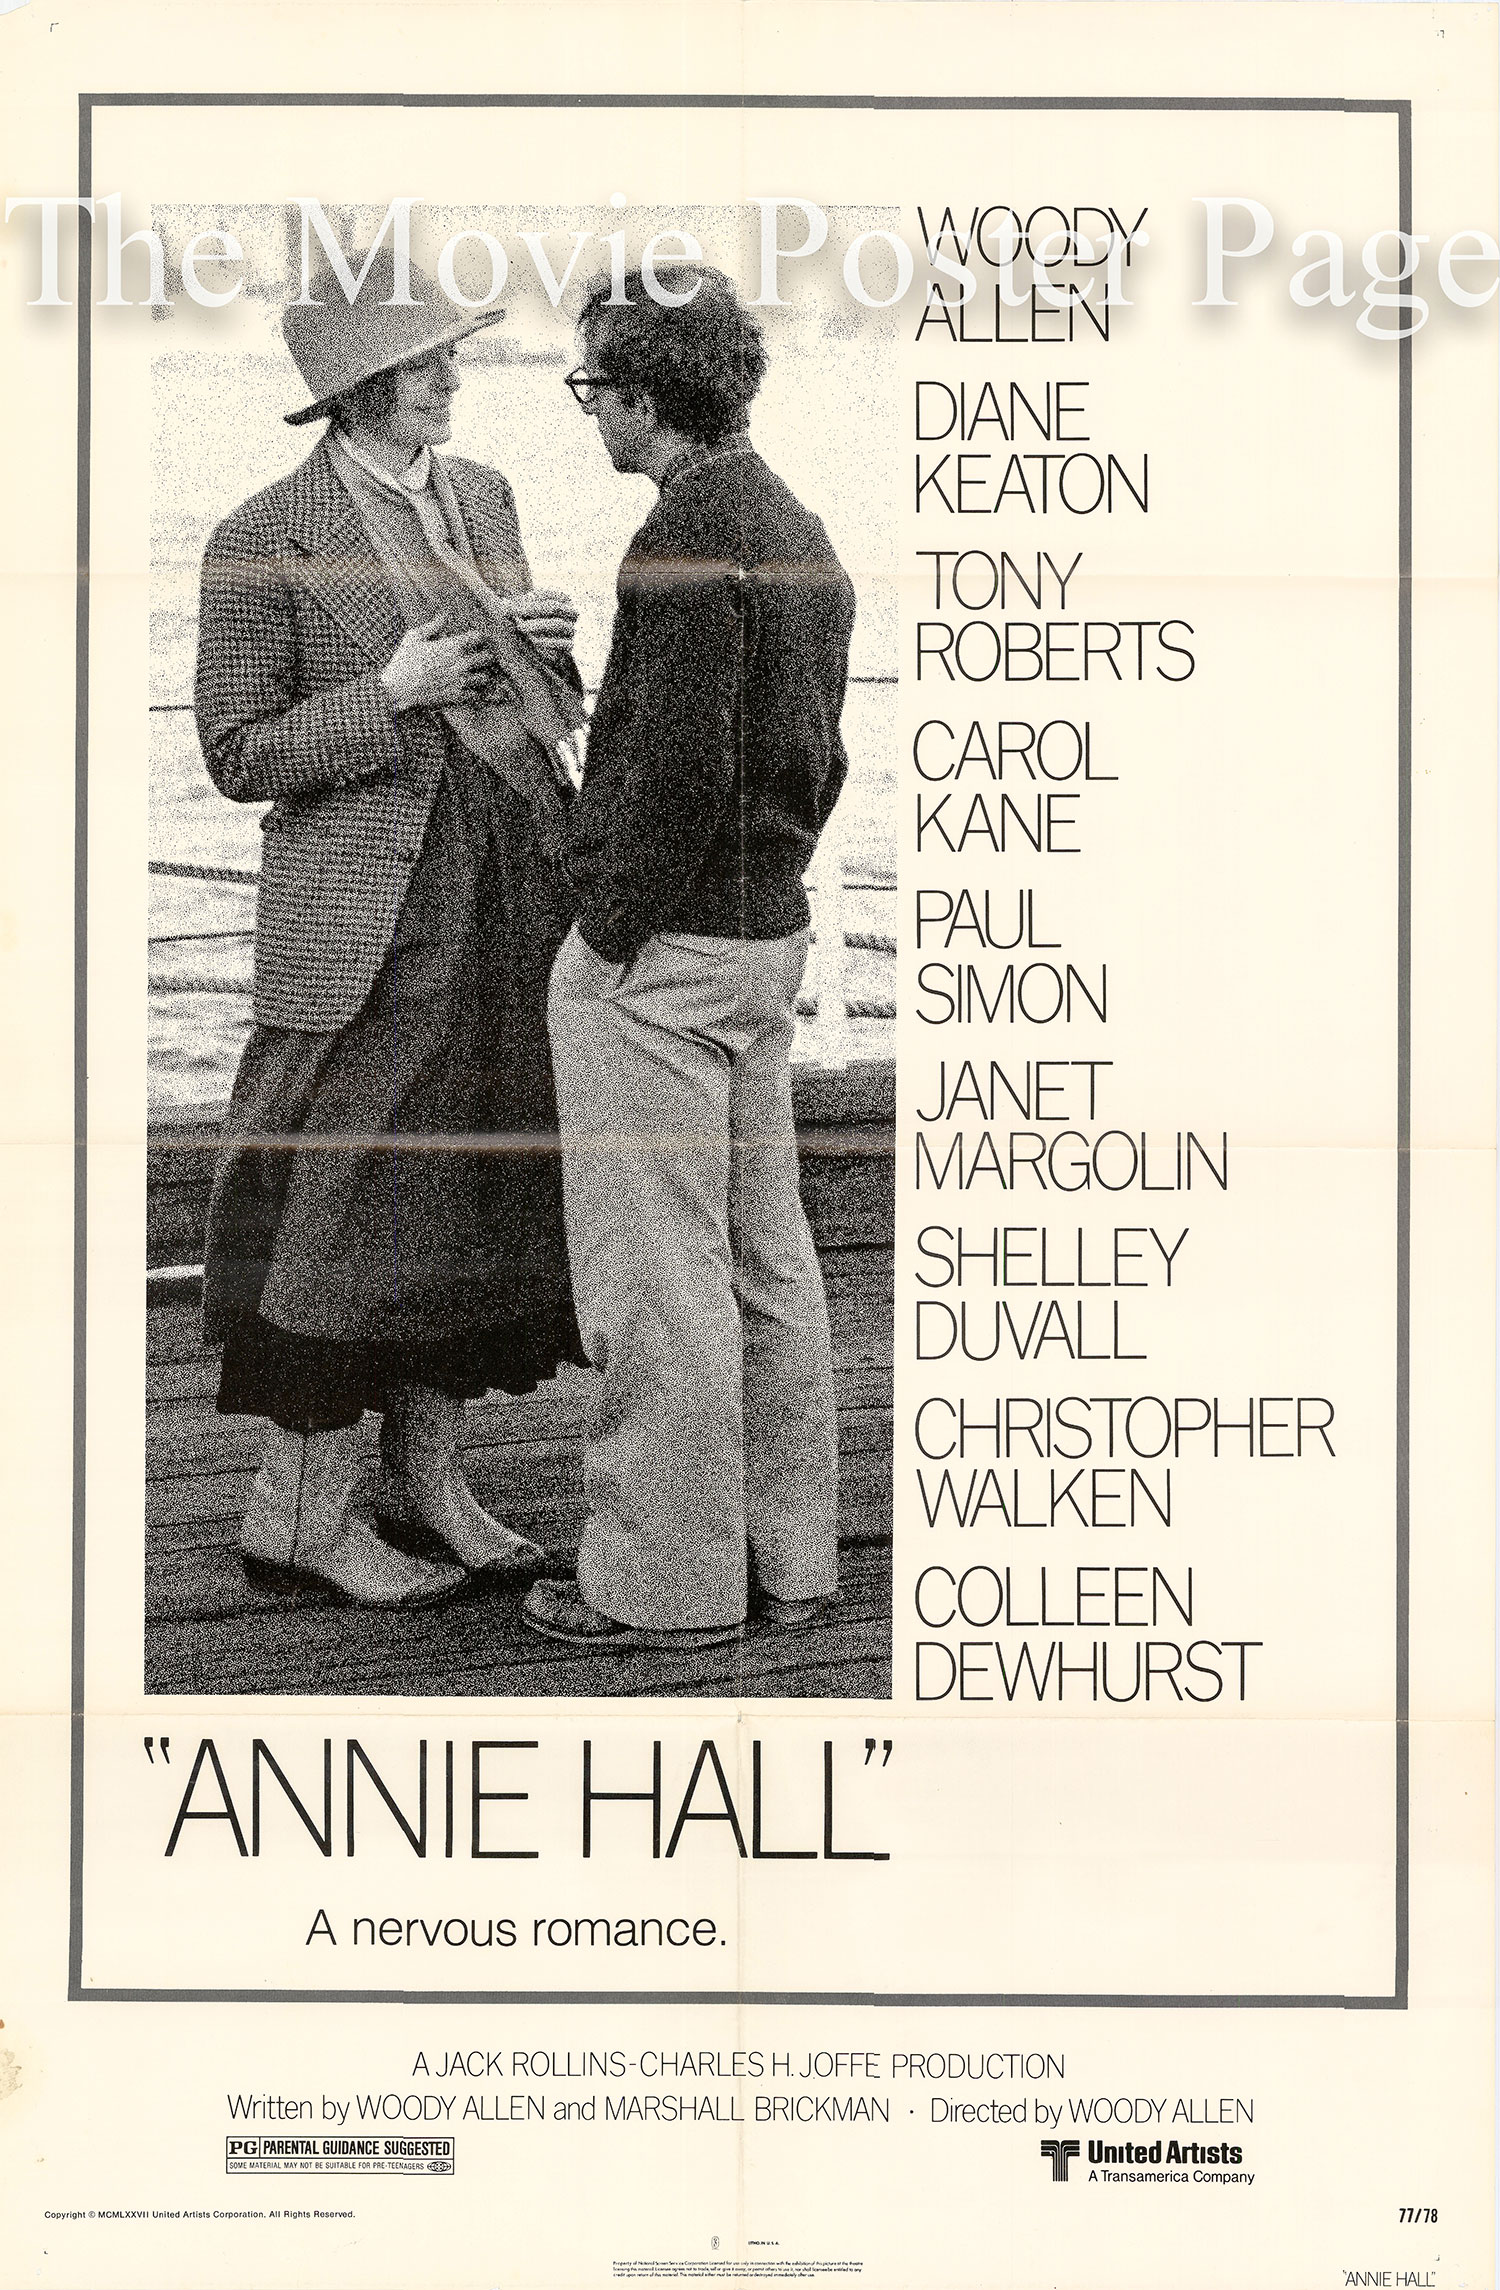 Pictured is a US promotional poster for the 1977 Woody Allen Film Annie Hall starring Woody Allen and Diane Keaton as Annie Hall.